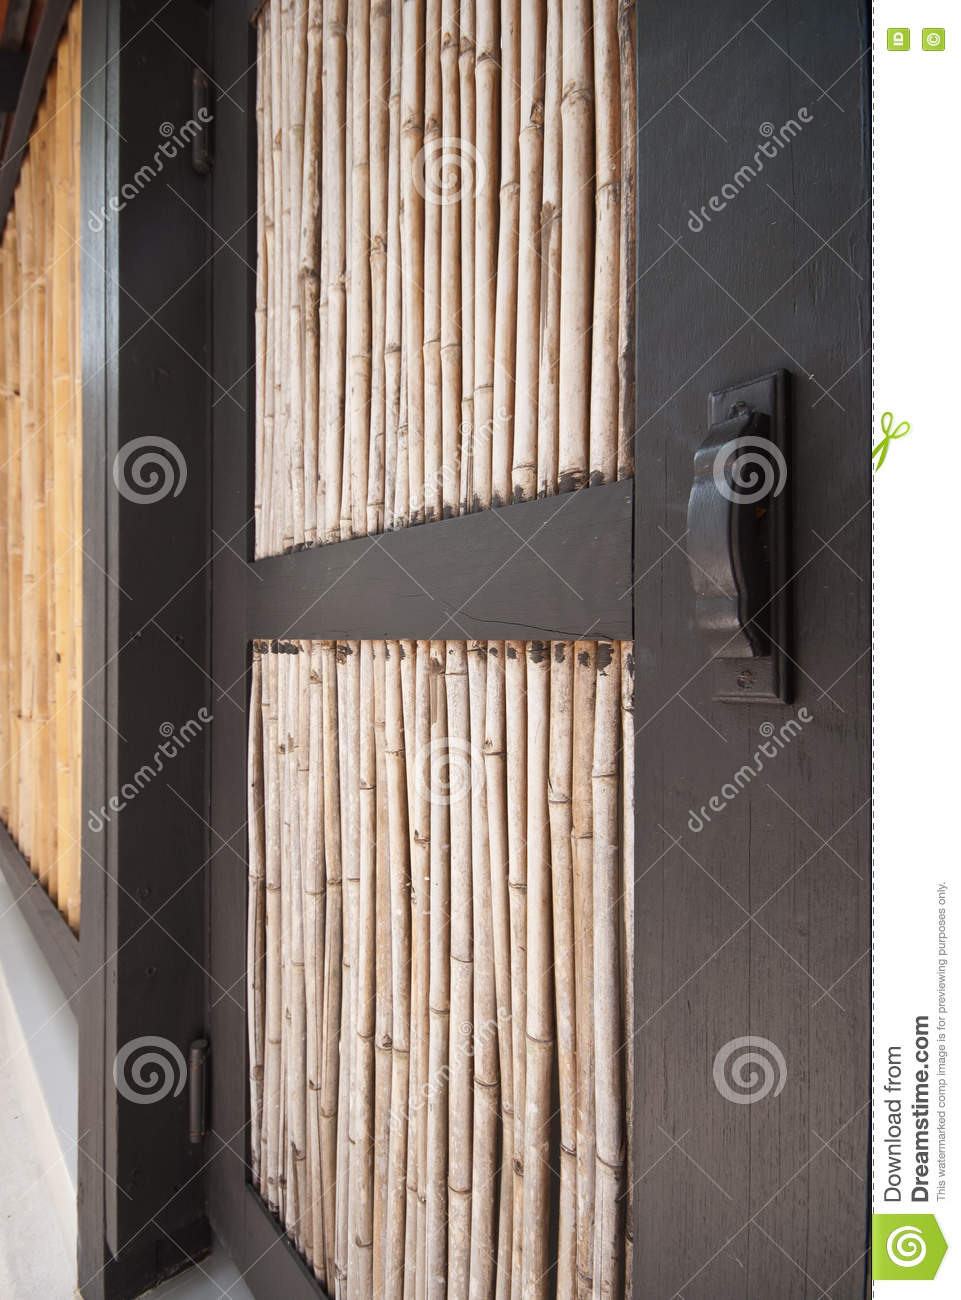 2 942 Bamboo Door Photos Free Royalty Free Stock Photos From Dreamstime